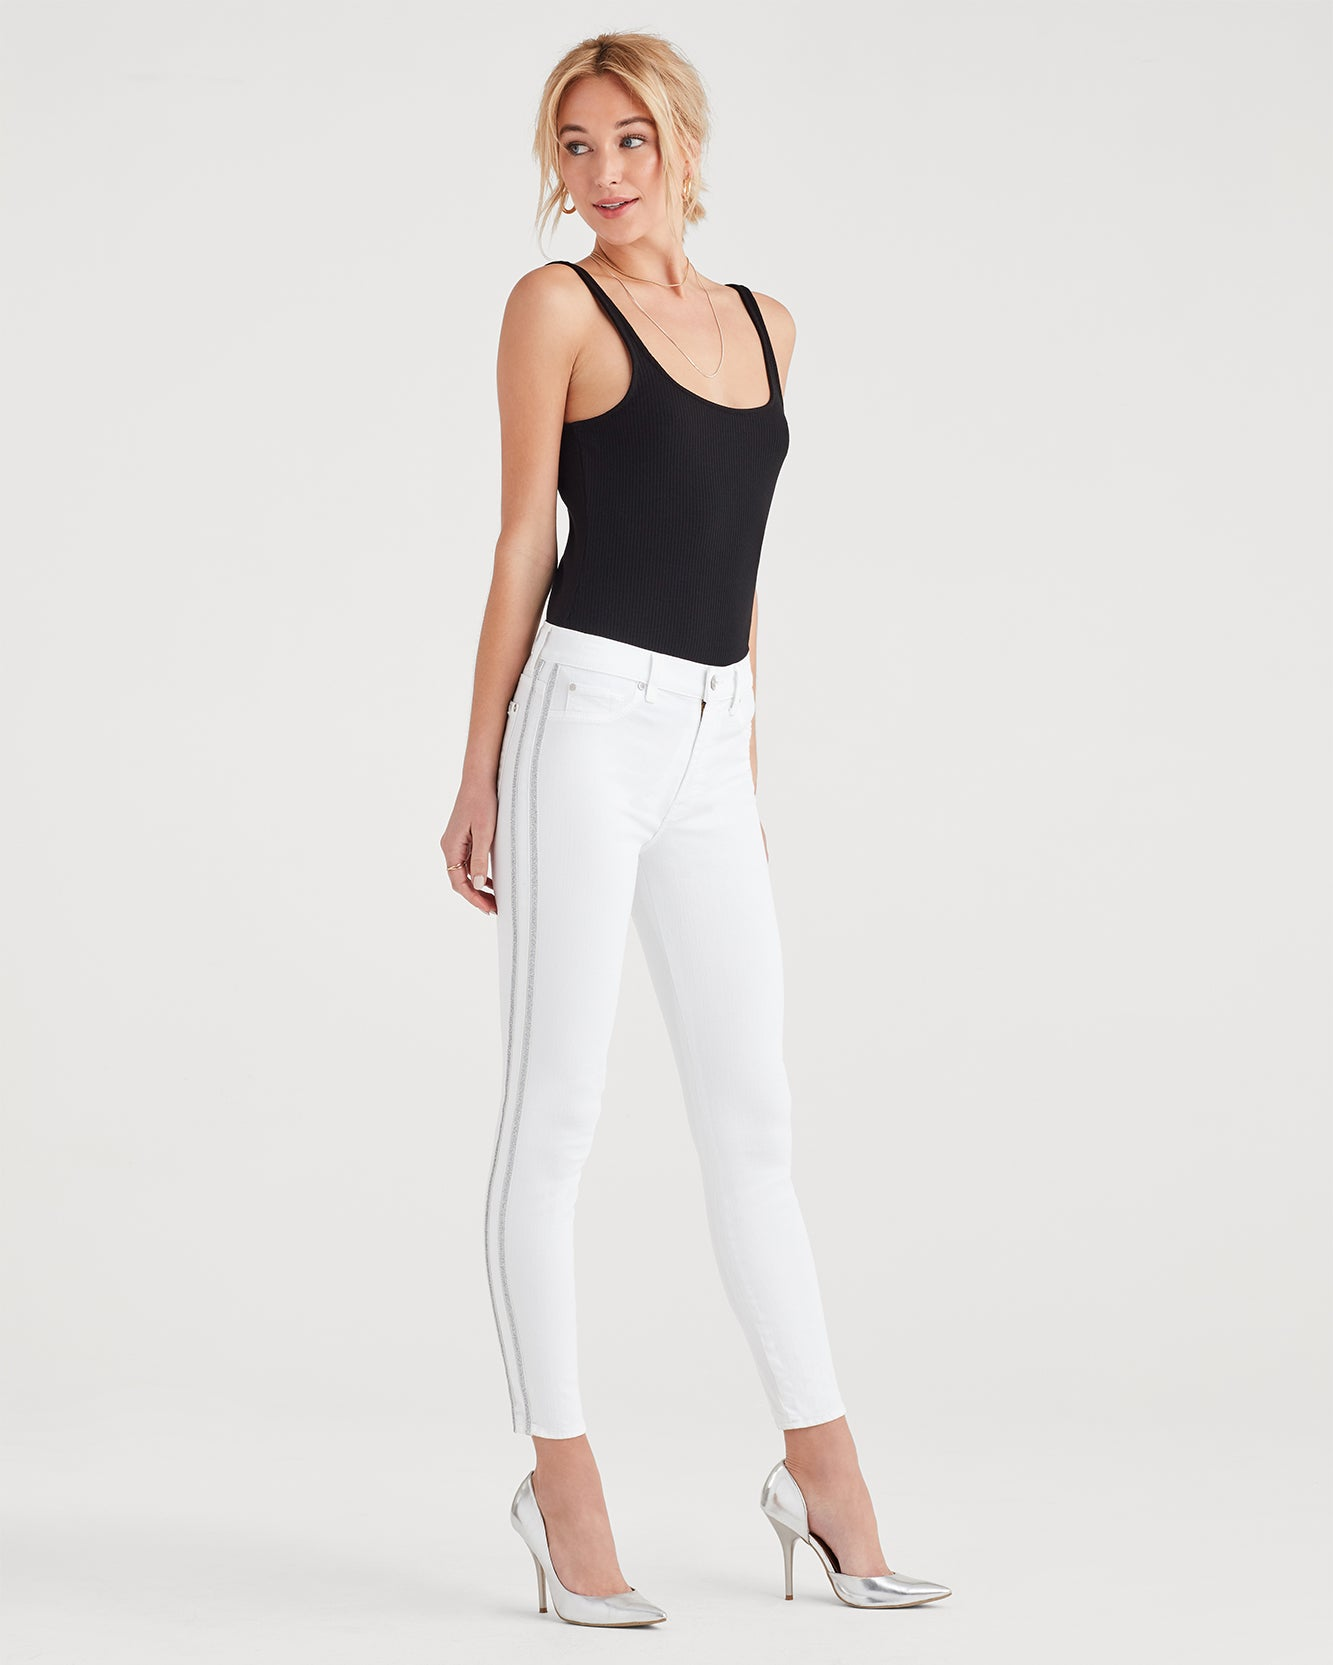 Image of High Waist Ankle Skinny with Double Silver Lurex Stripes in White Fashion